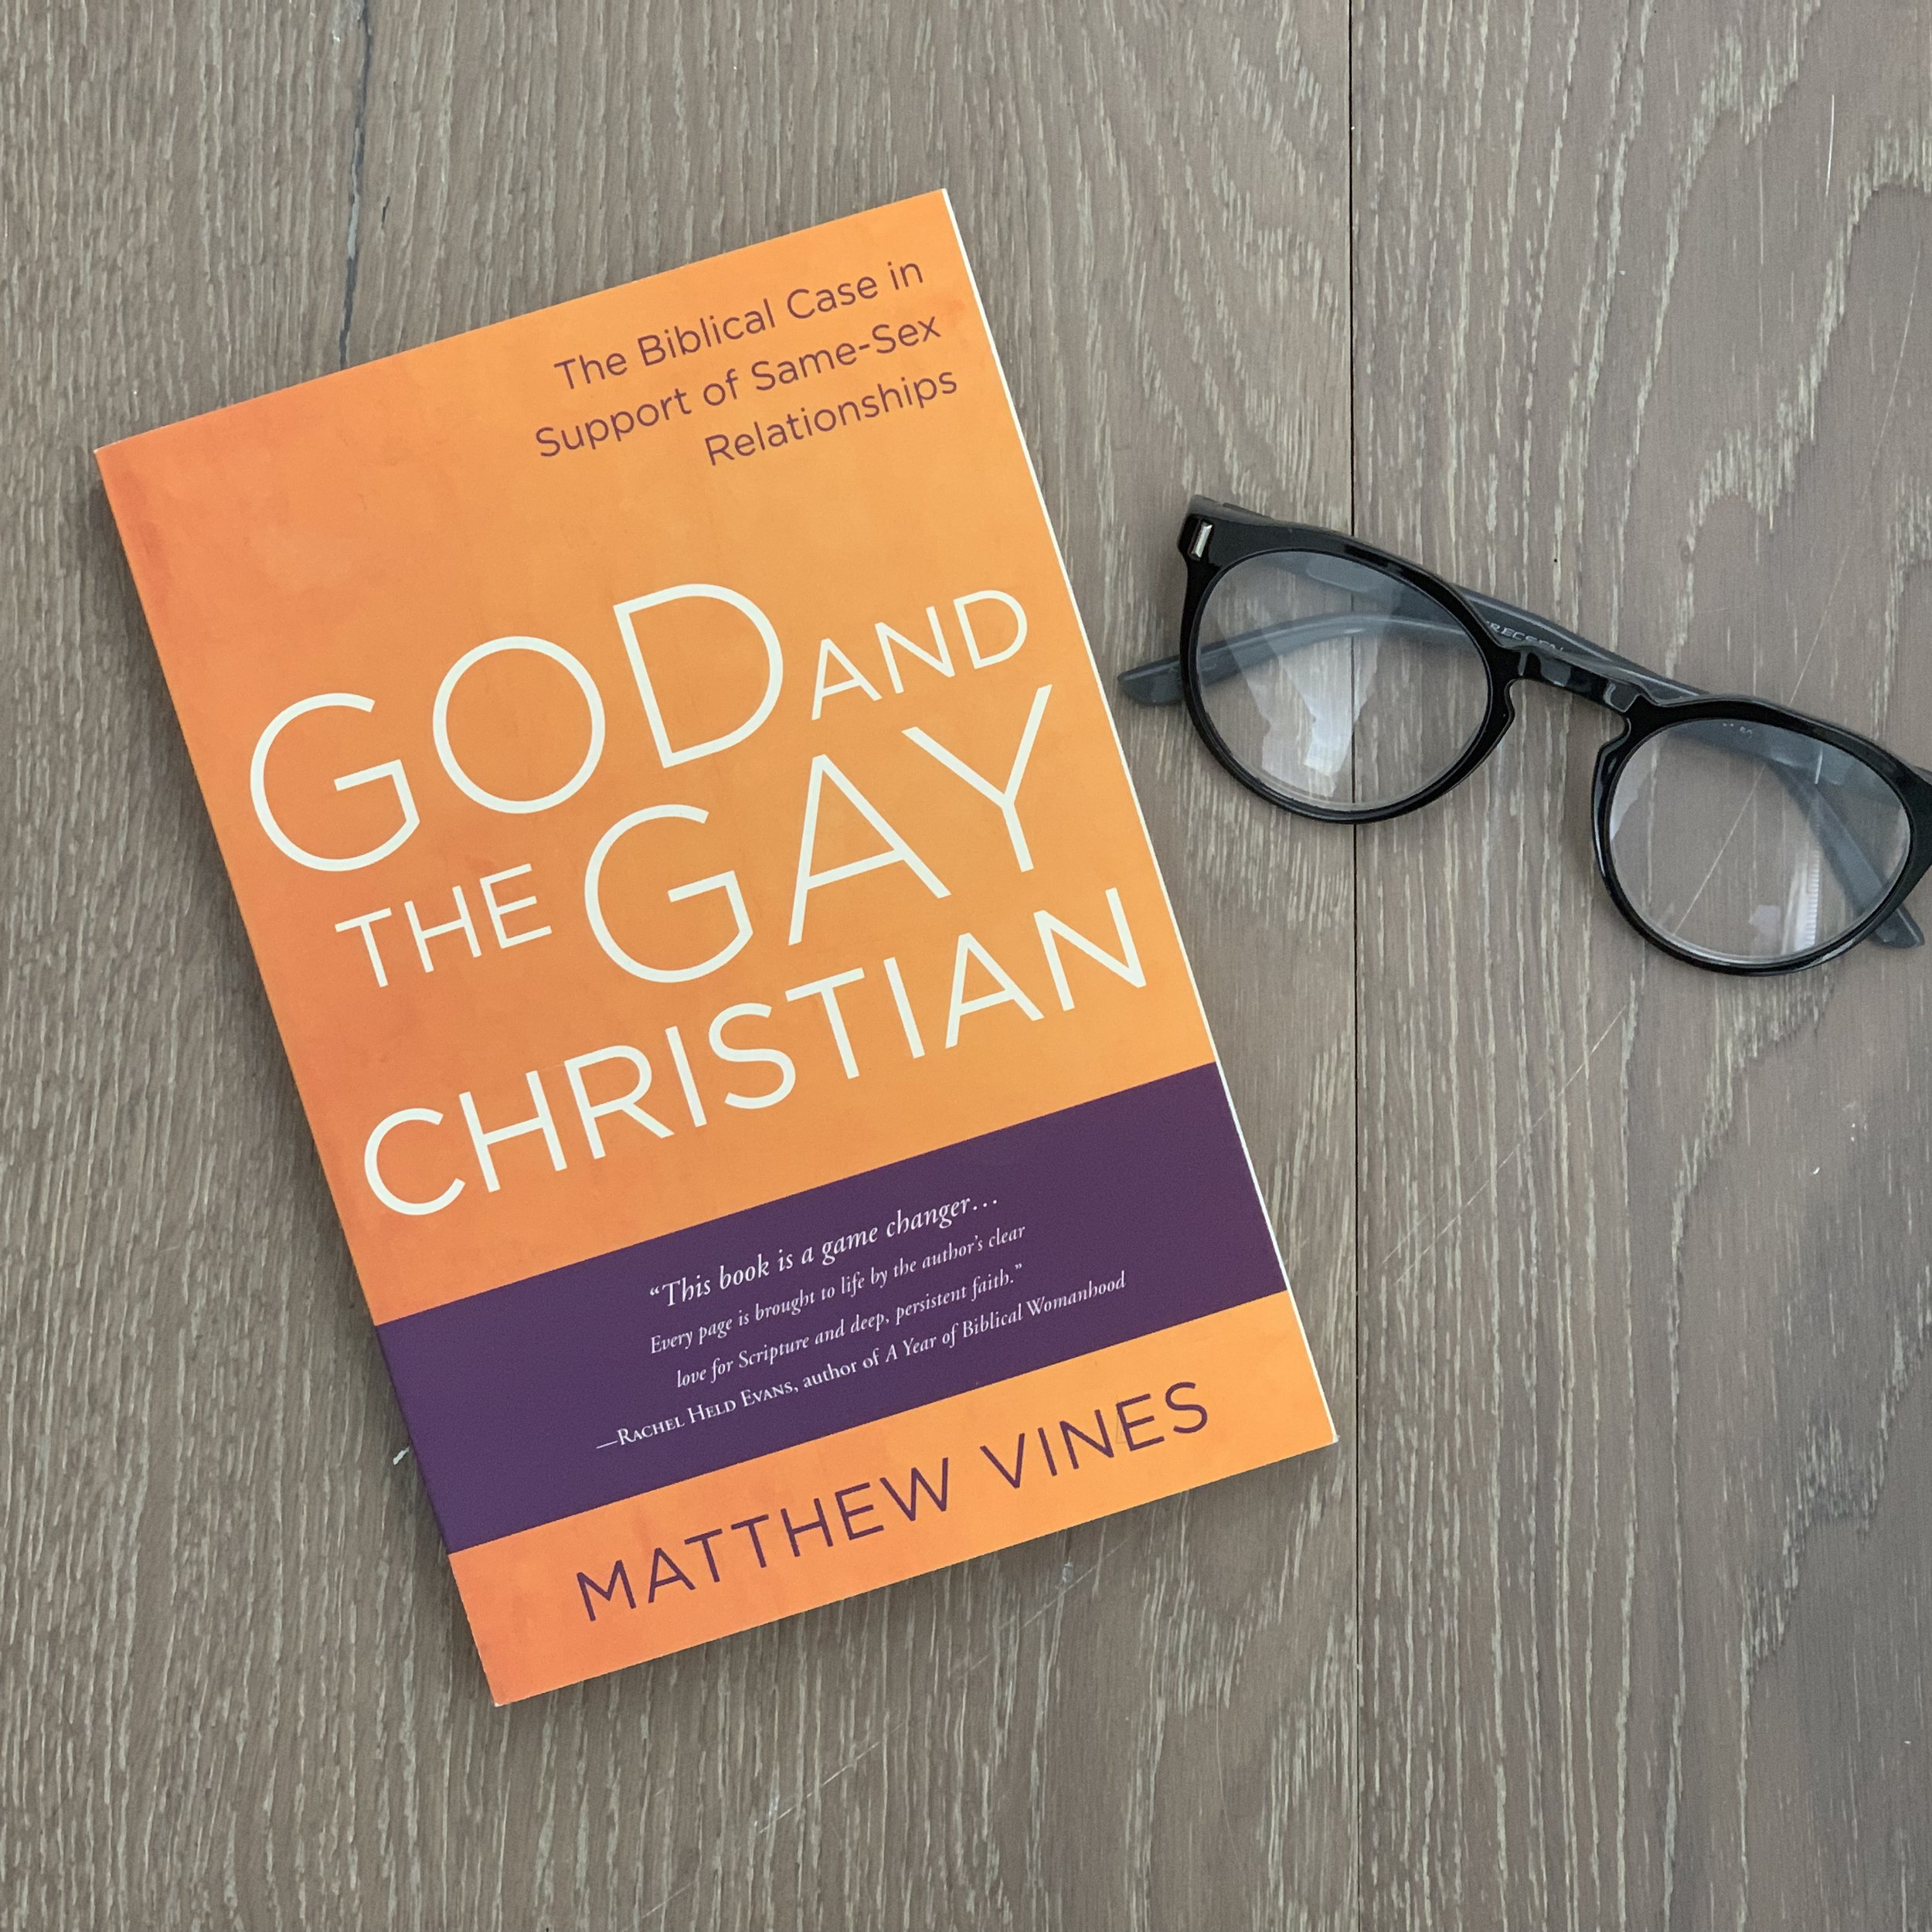 The Biblical case in Support of Same-Sex Relationships -